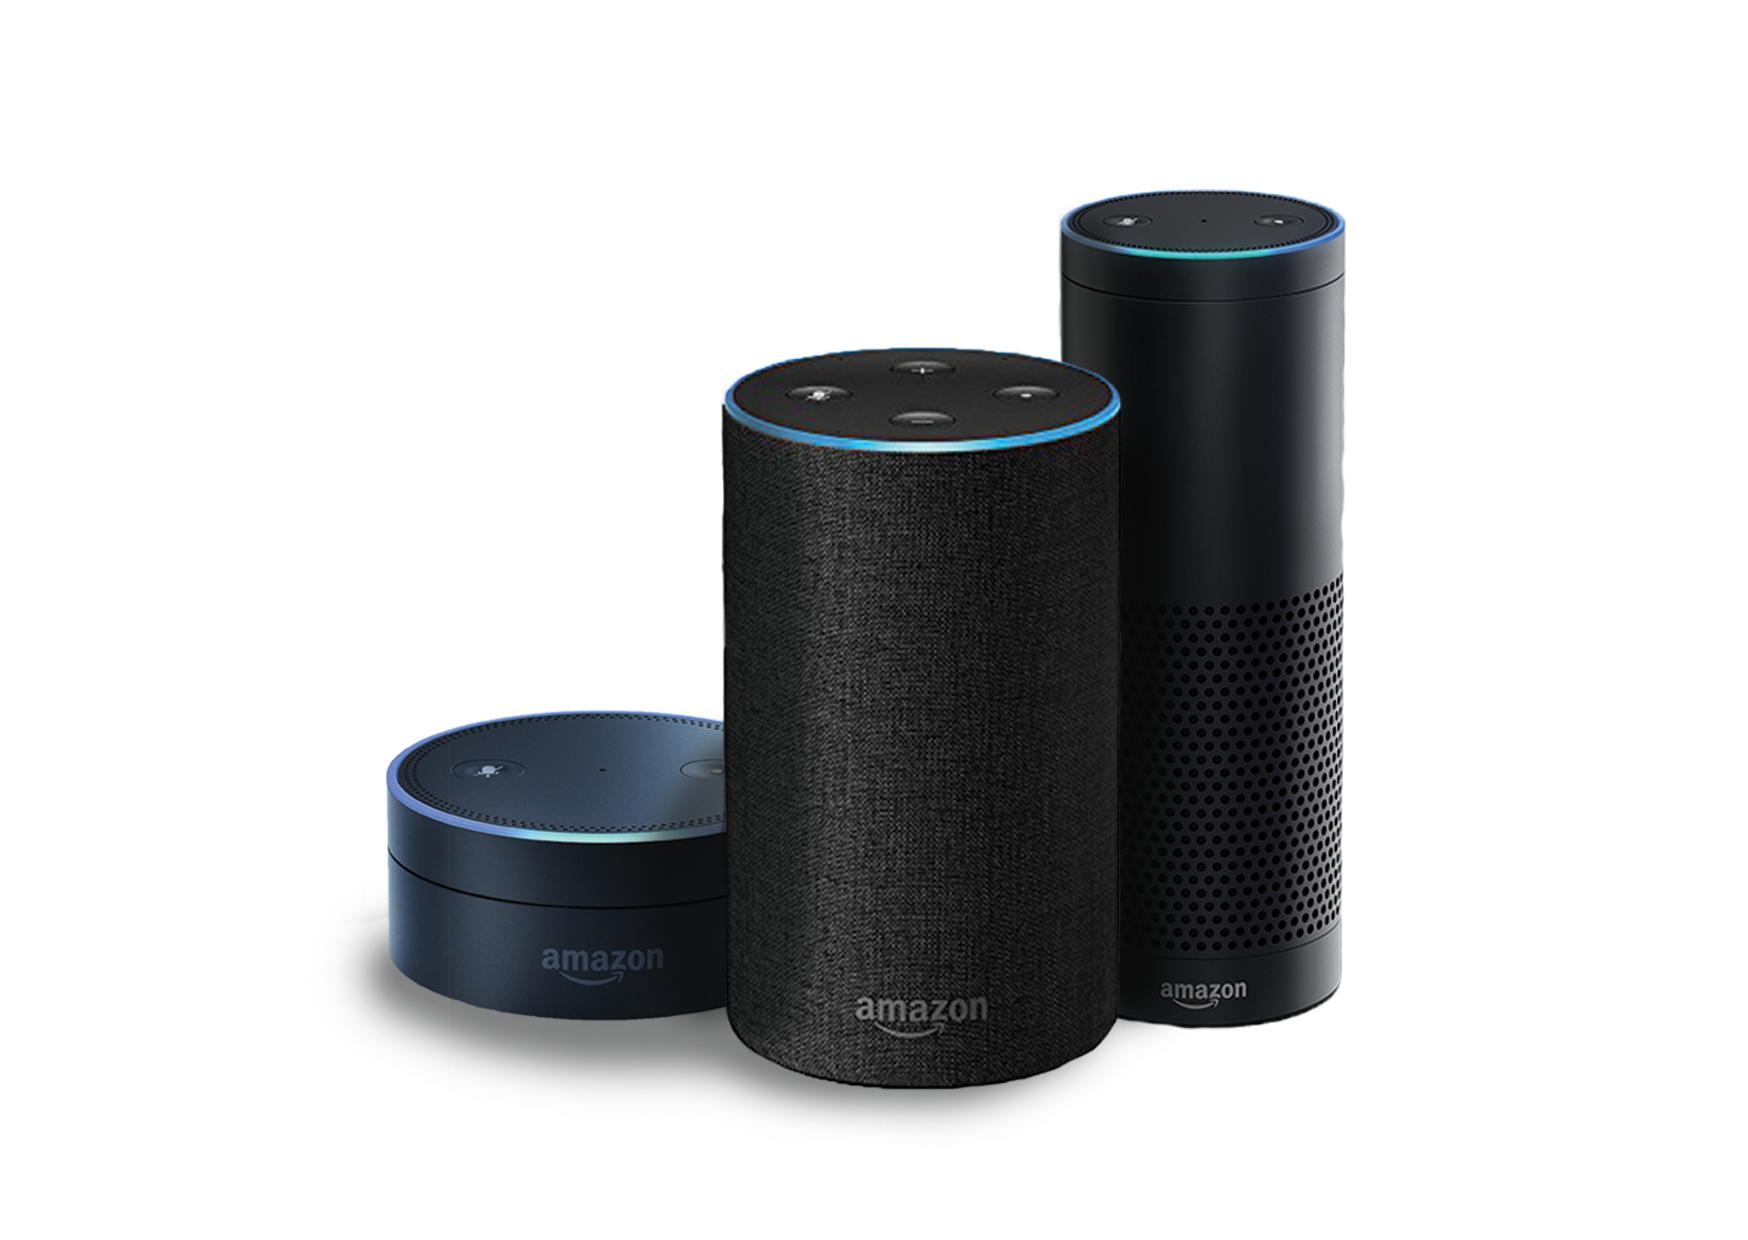 Amazon echo png. Lunch time deals up